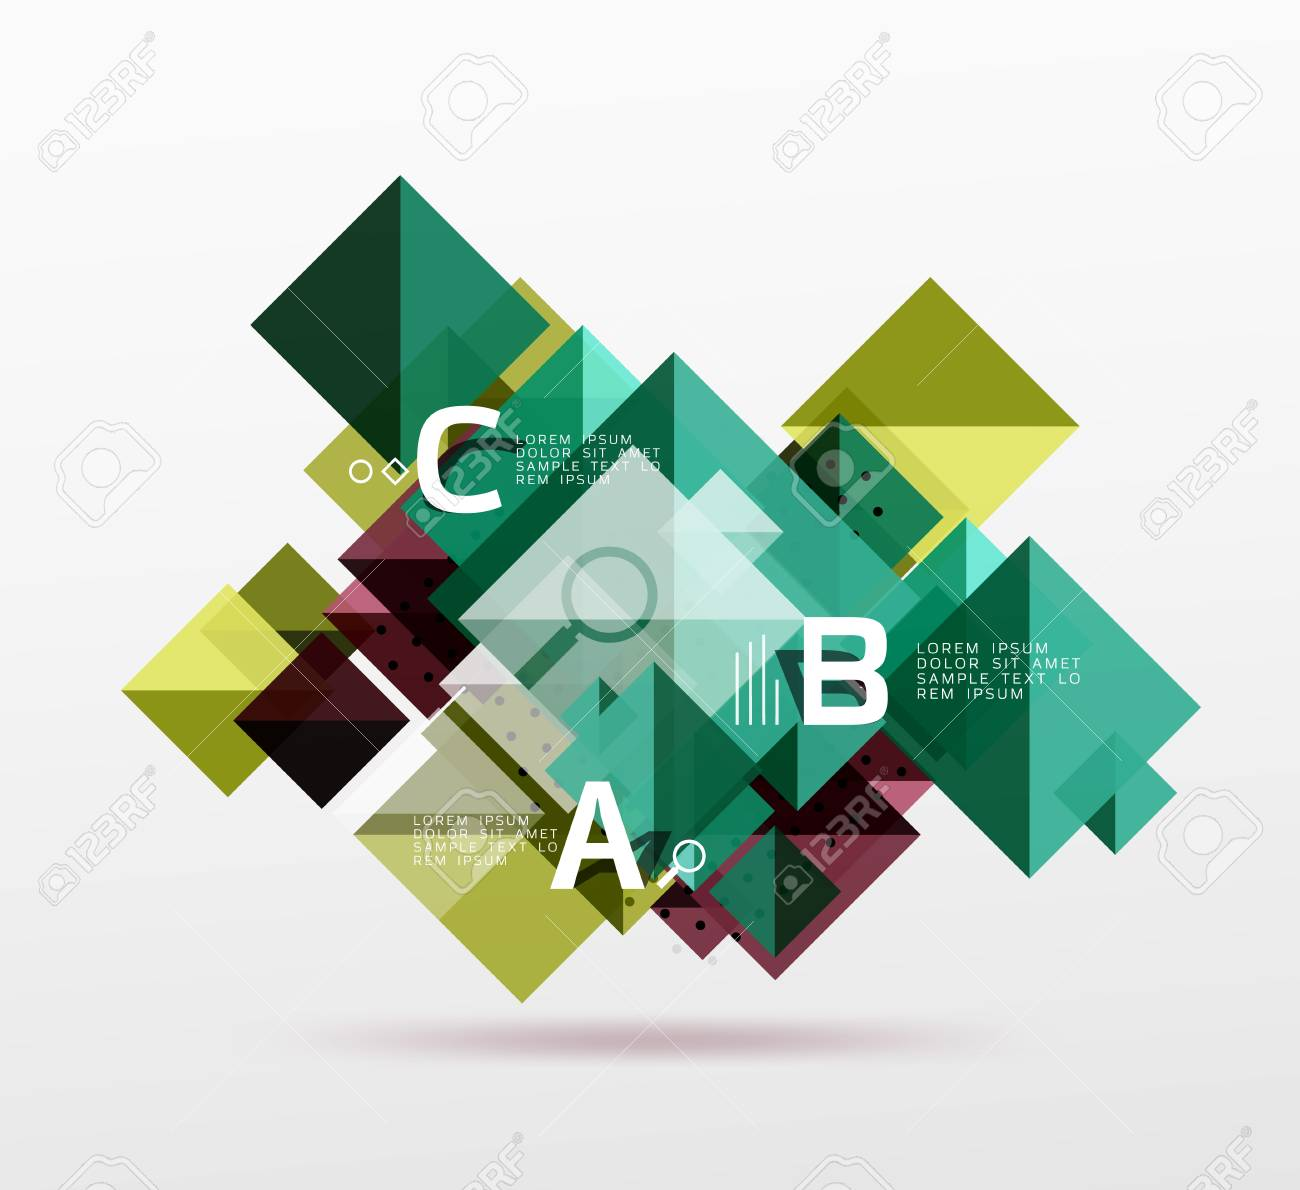 Repetition Of Overlapping Color Squares Royalty Free Cliparts ...